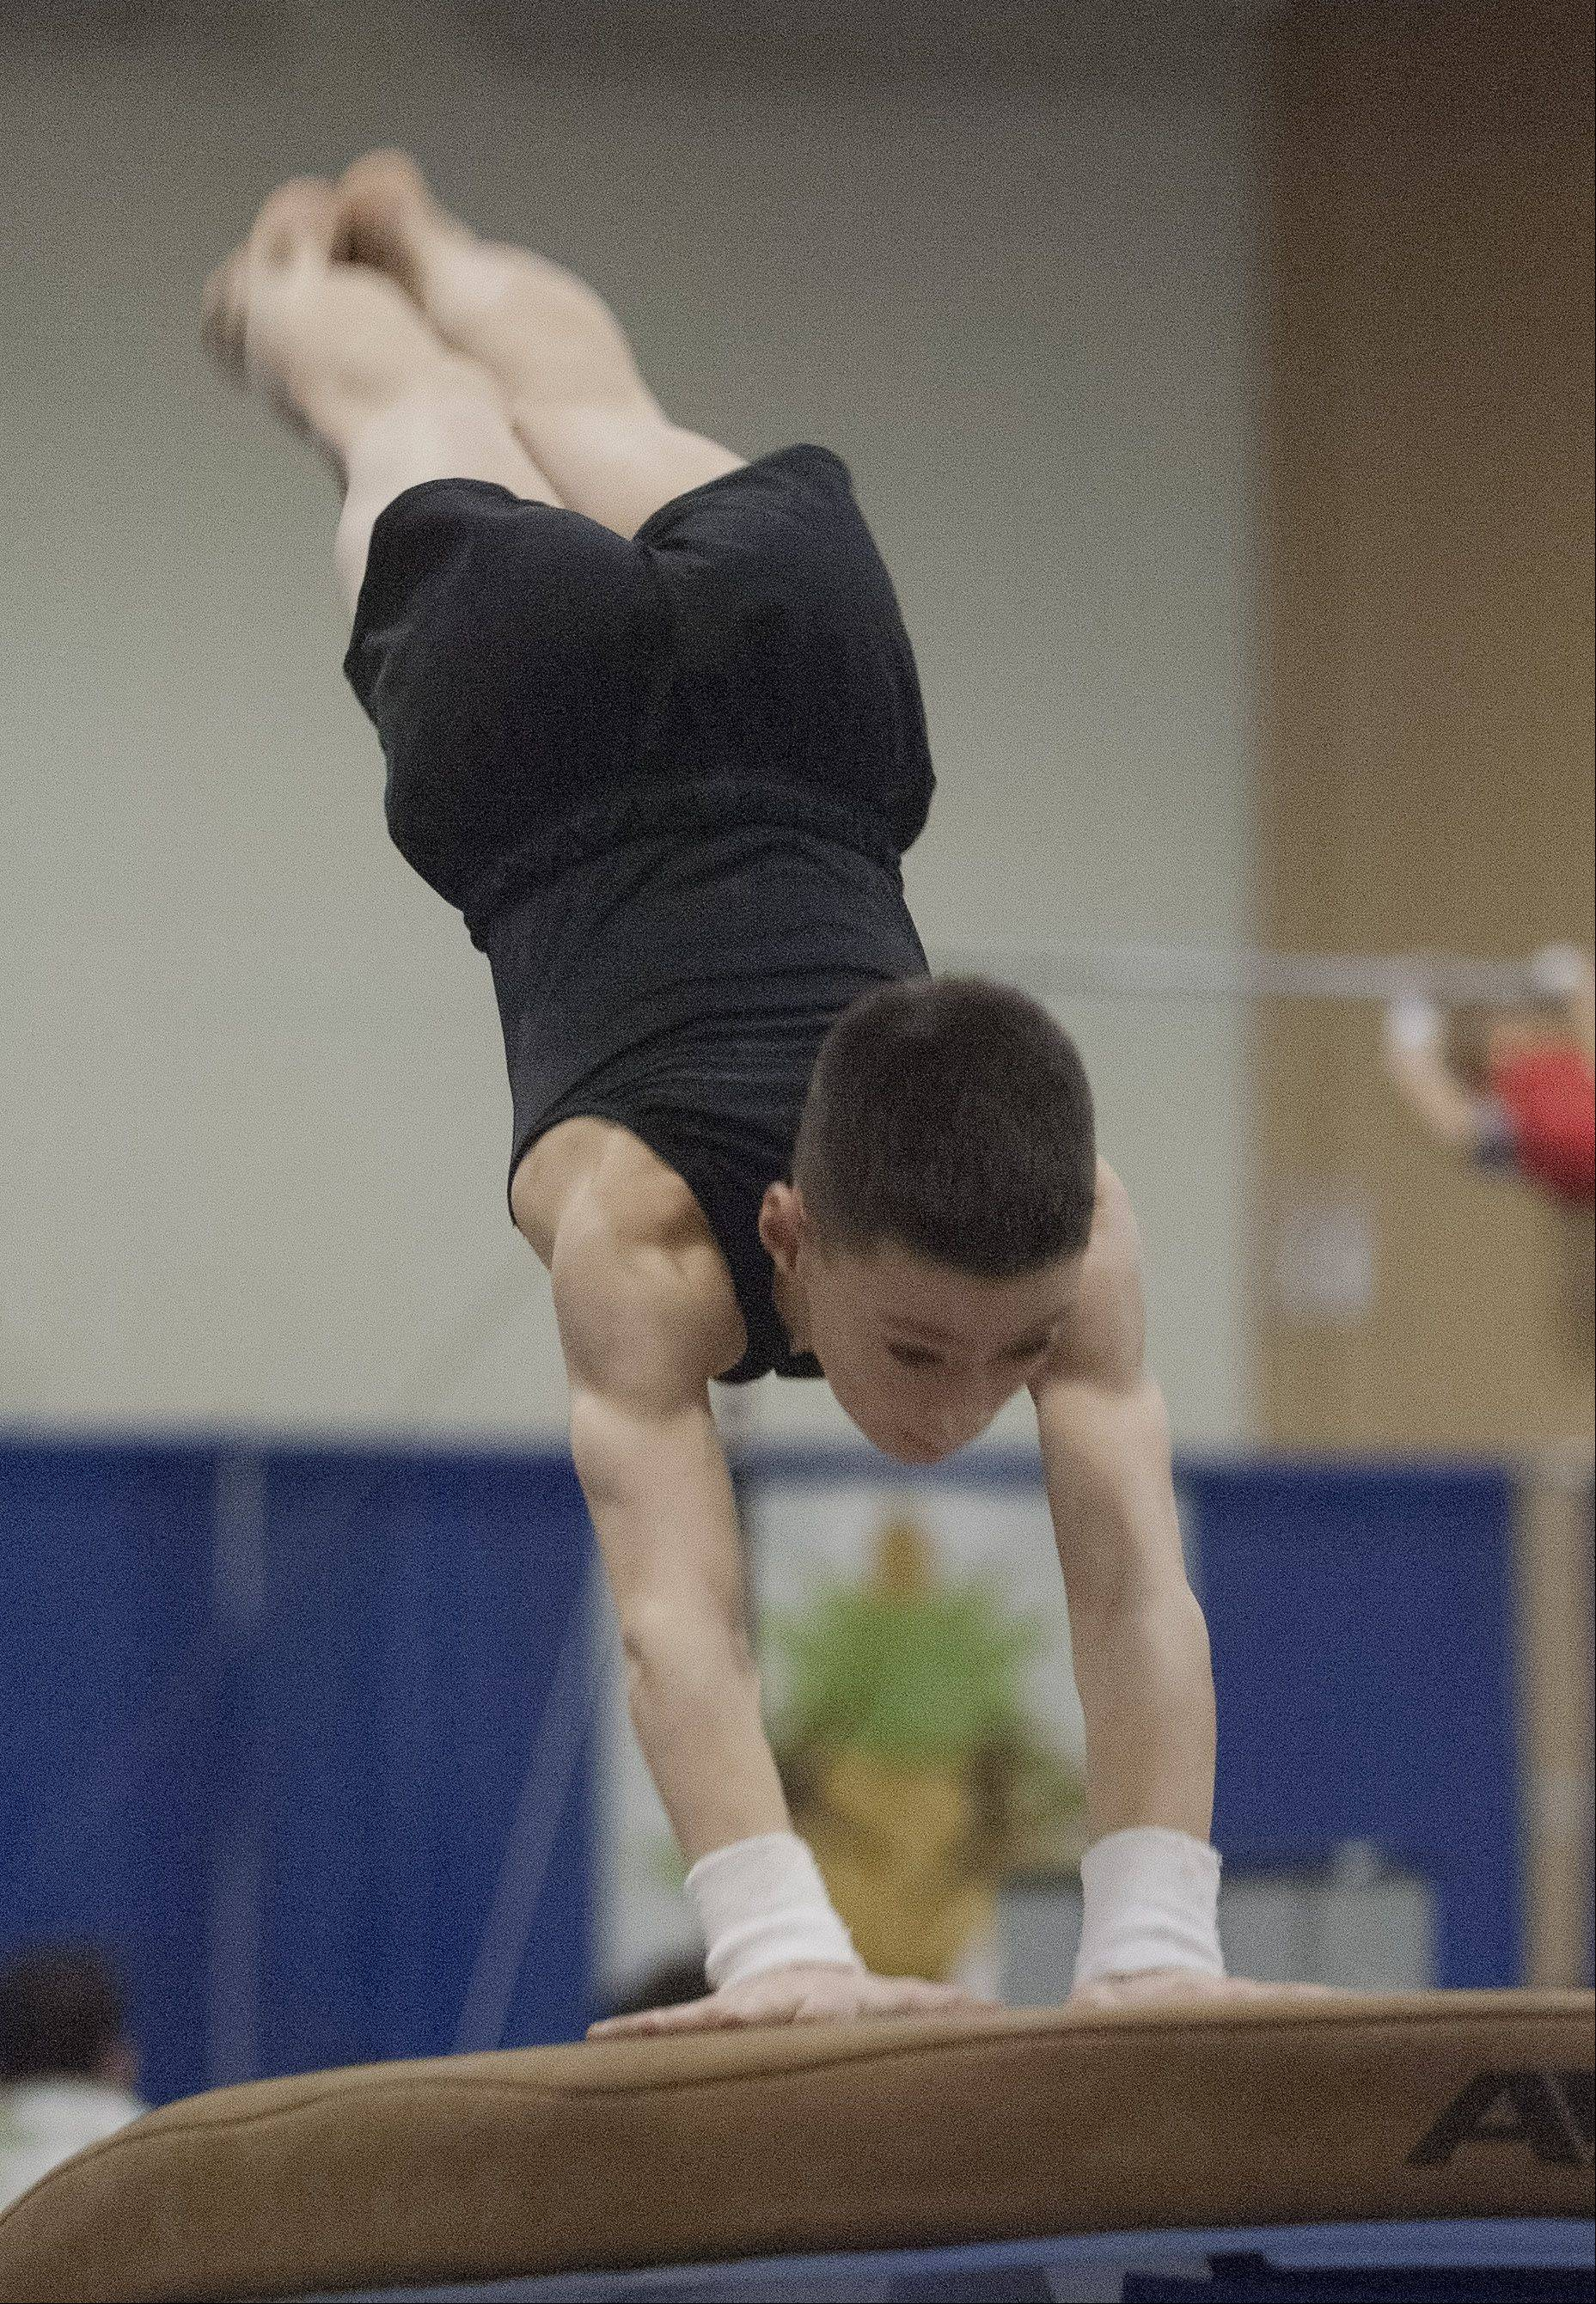 Skyler Chauff of the Buffalo Grove Gymnastics Center competes on the vault during the Hawaiian Pineapple Classic gymnastics meet, held at the Schaumburg Convention Center Saturday.